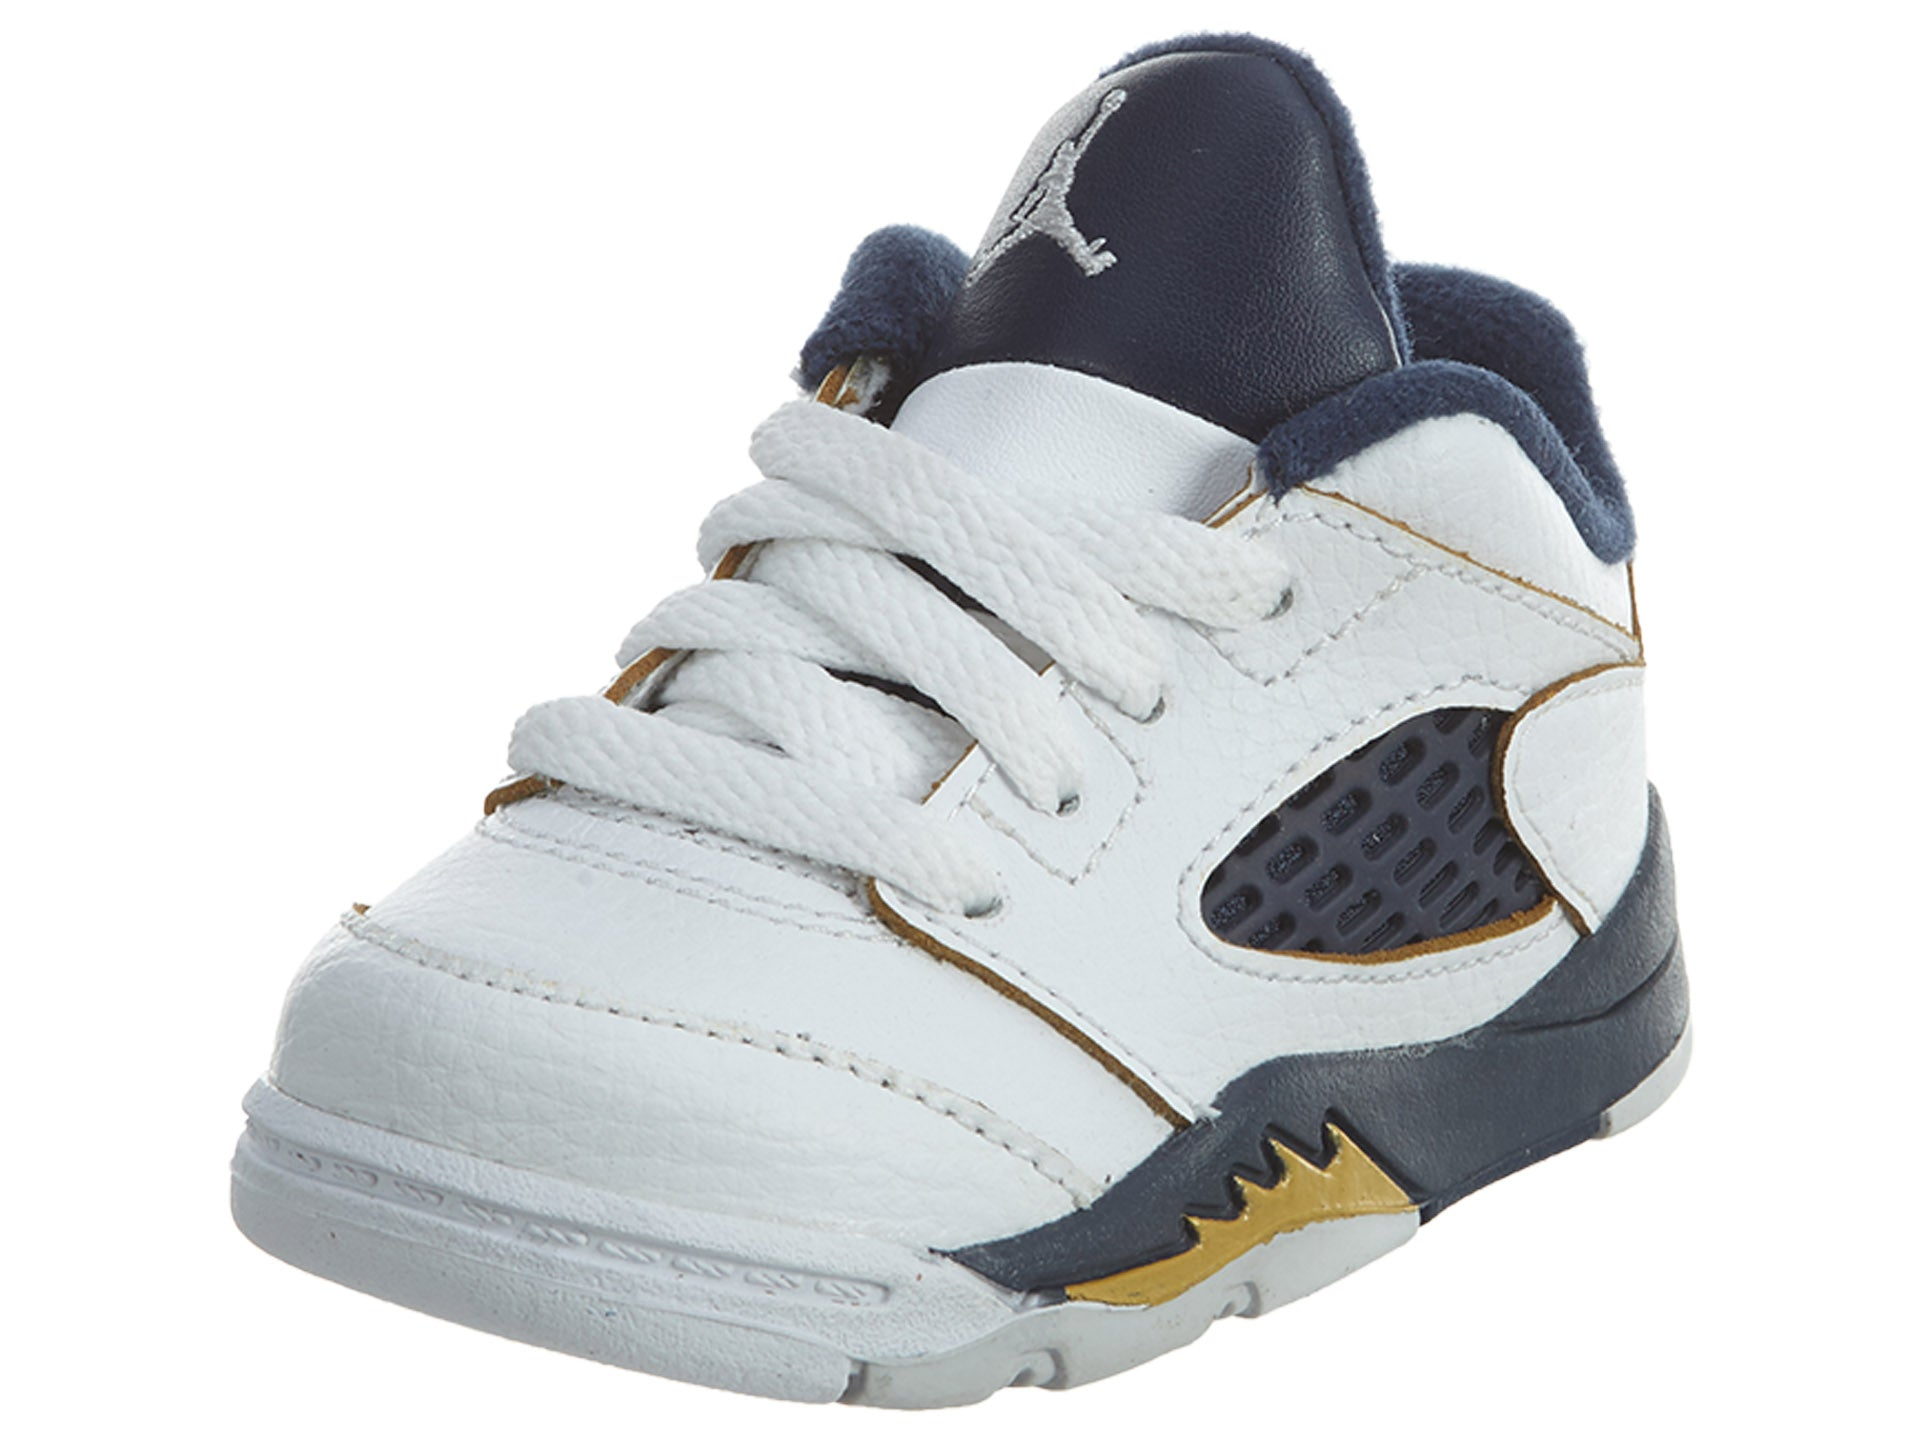 e70a32ef4 Nike Air Jordan 5 Retro Low  Dunk From Above  – shopoply